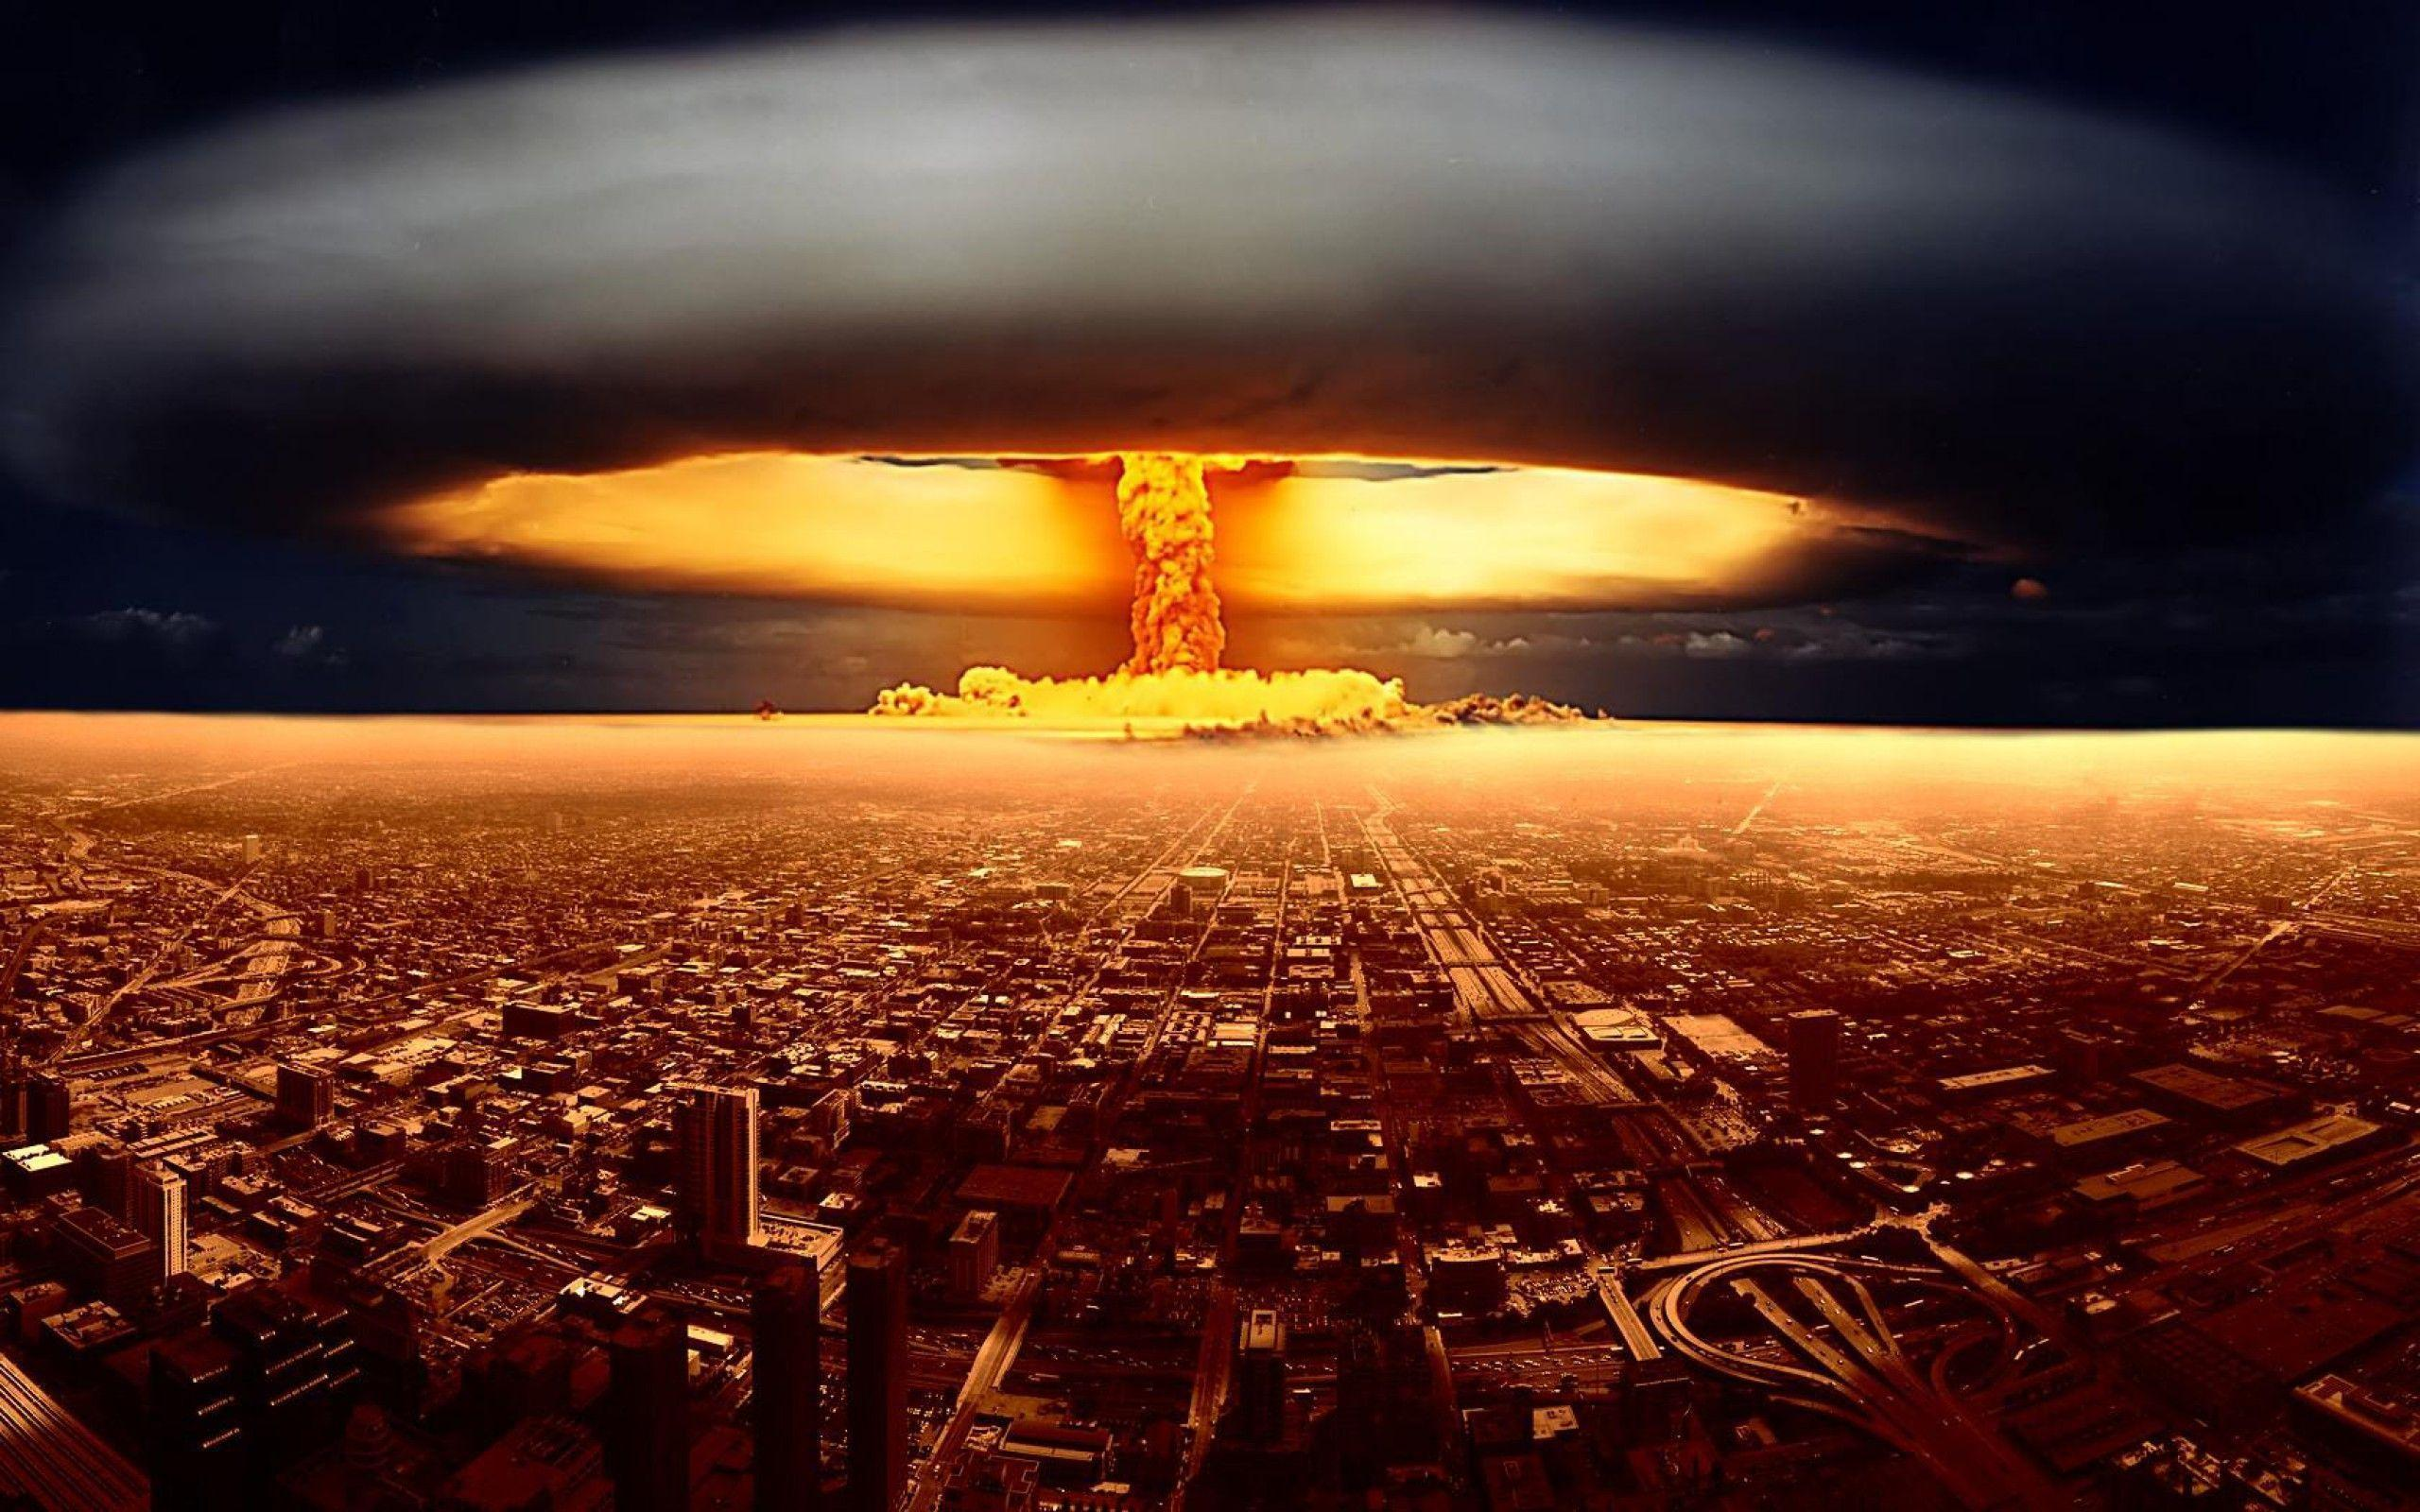 Nuclear Explosion Wallpapers - Wallpaper Cave Real Nuclear Explosions Wallpaper